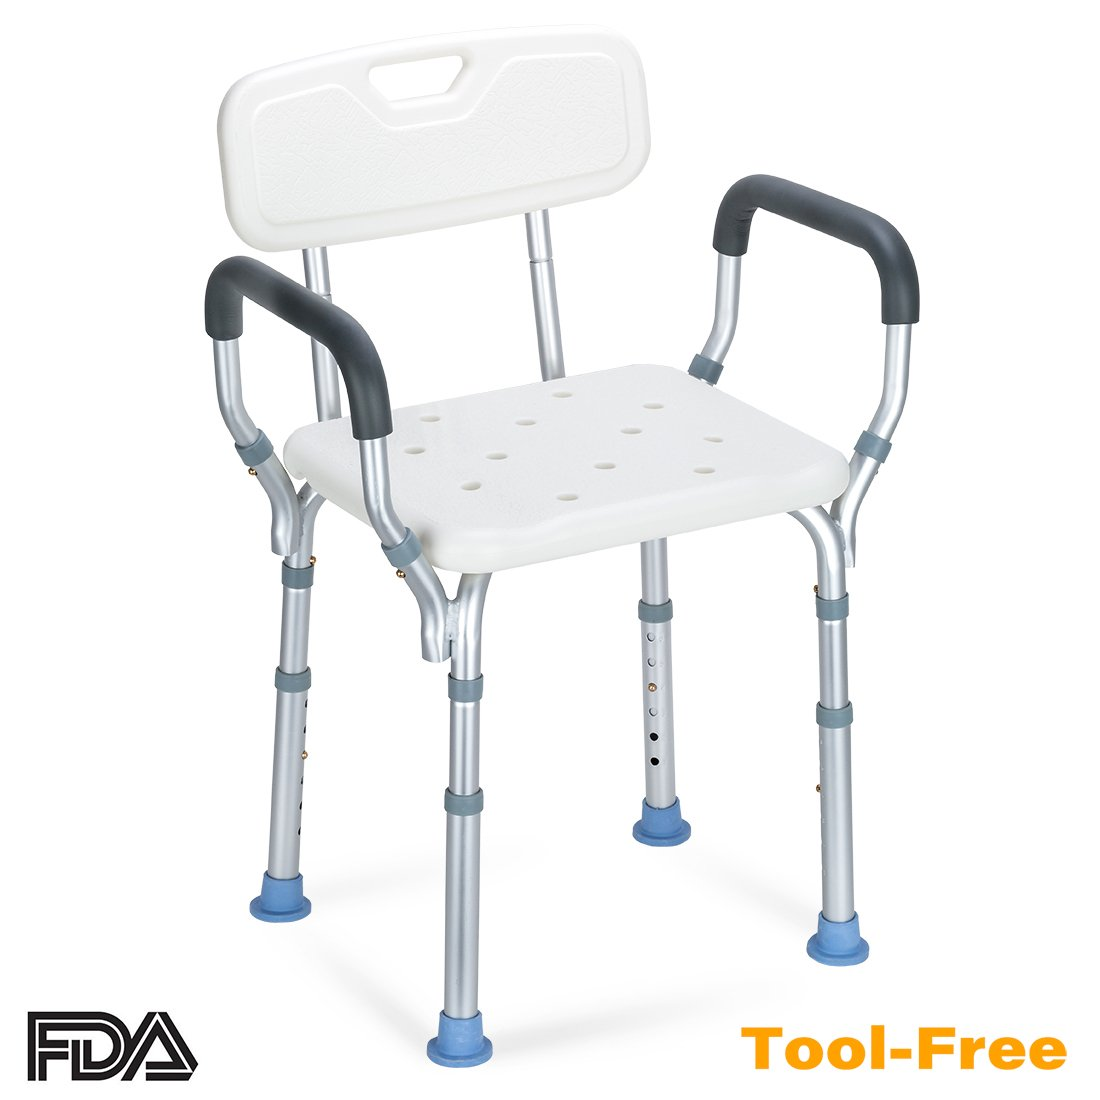 OasisSpace Heavy Duty Shower Chair with Back - Bathtub Chair with Arms for Handicap, Disabled, Seniors & Elderly - Adjustable Medical Bath Seat Handles - Non Slip Tub Safety